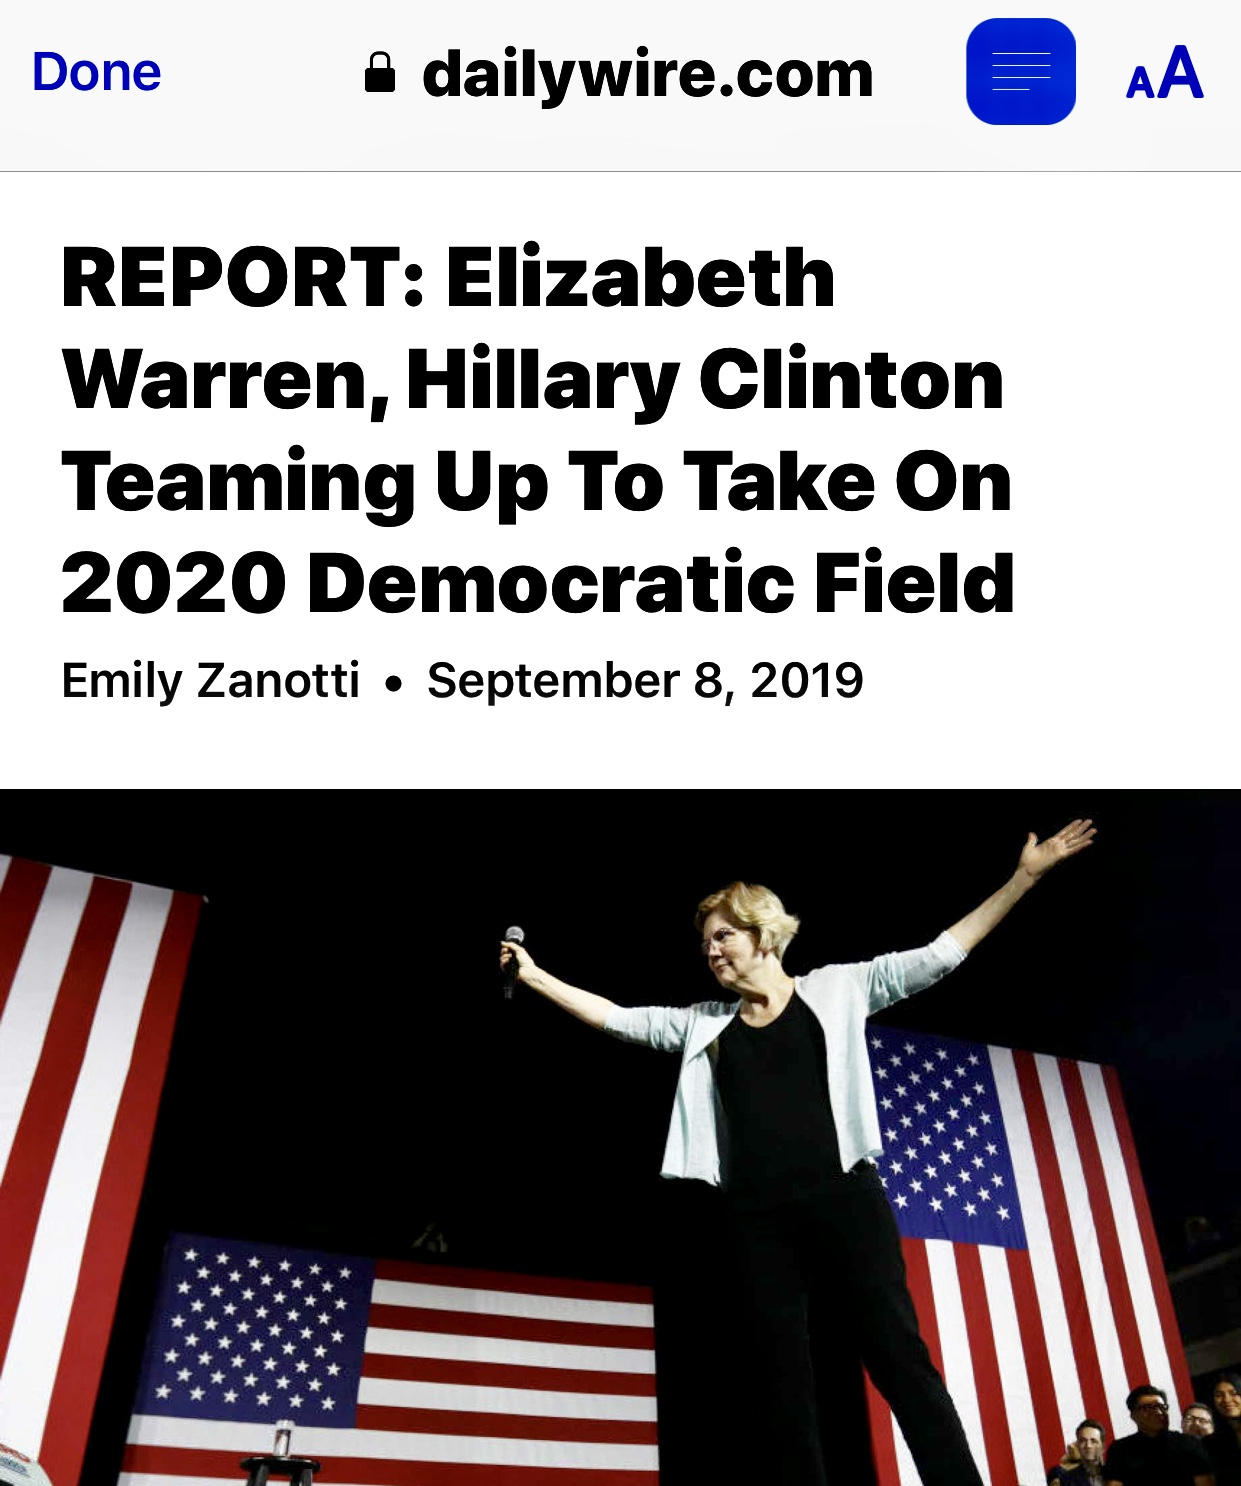 Elizabeth Warren & Hillary Clinton Teaming Up To Take On 2020 Democratic Field | Daily Wire